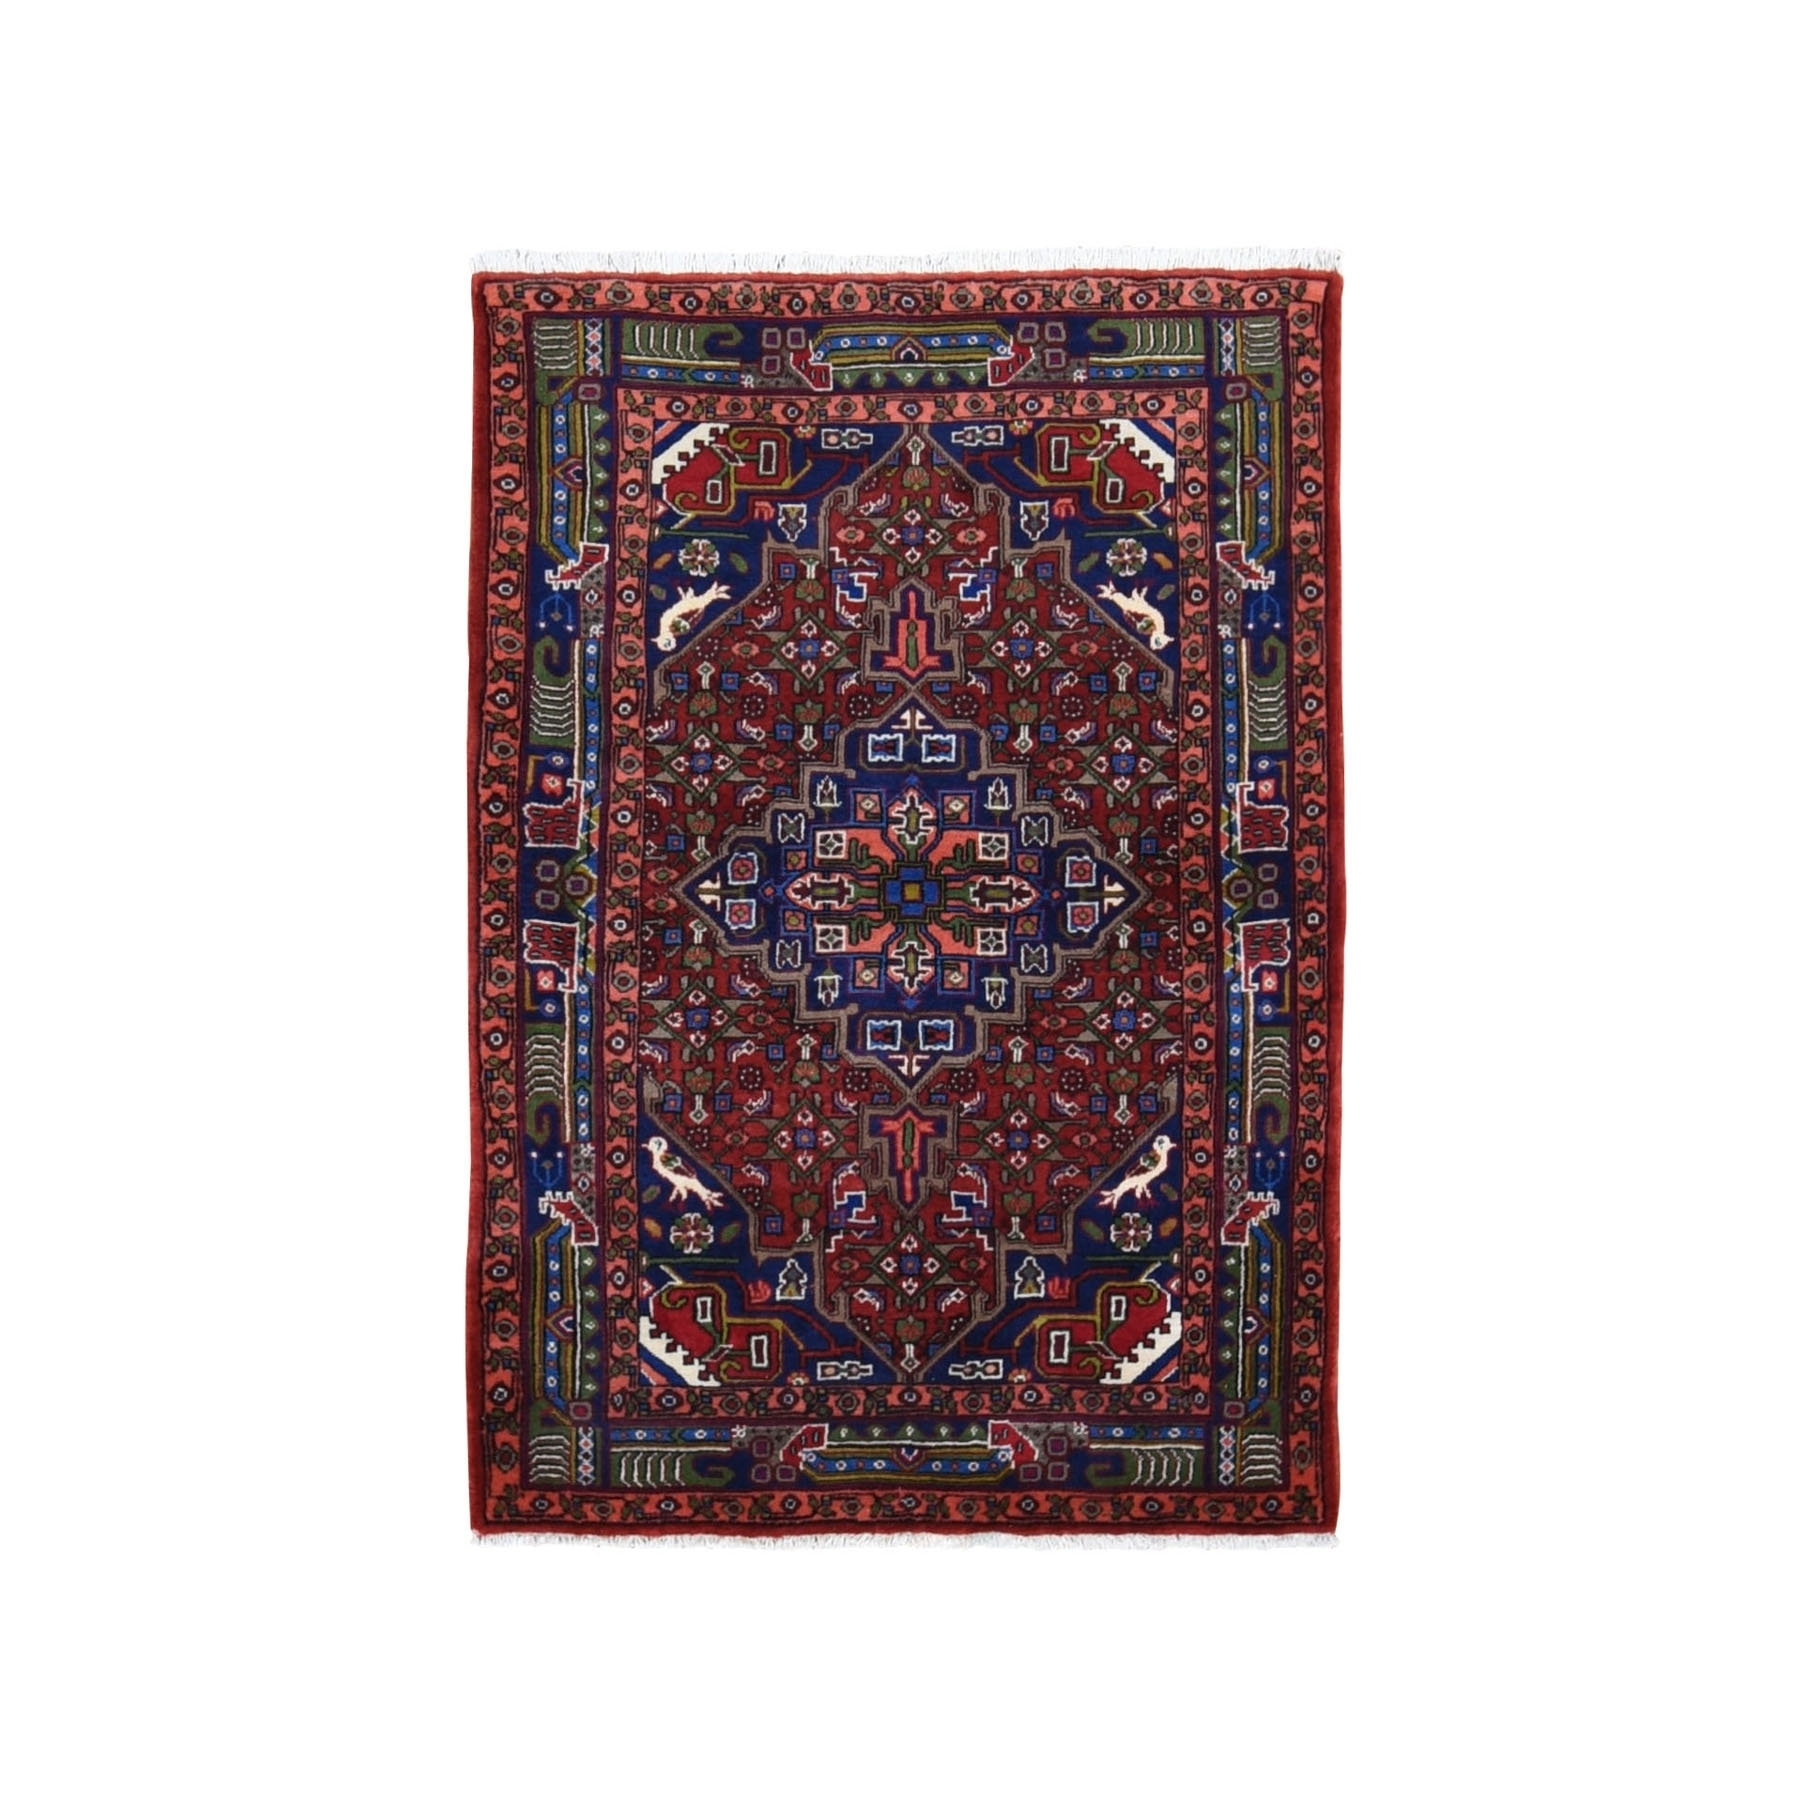 "3'5""x4'10"" Red New Persian Senneh Dense Weave Pure Wool Hand Knotted Oriental Rug"